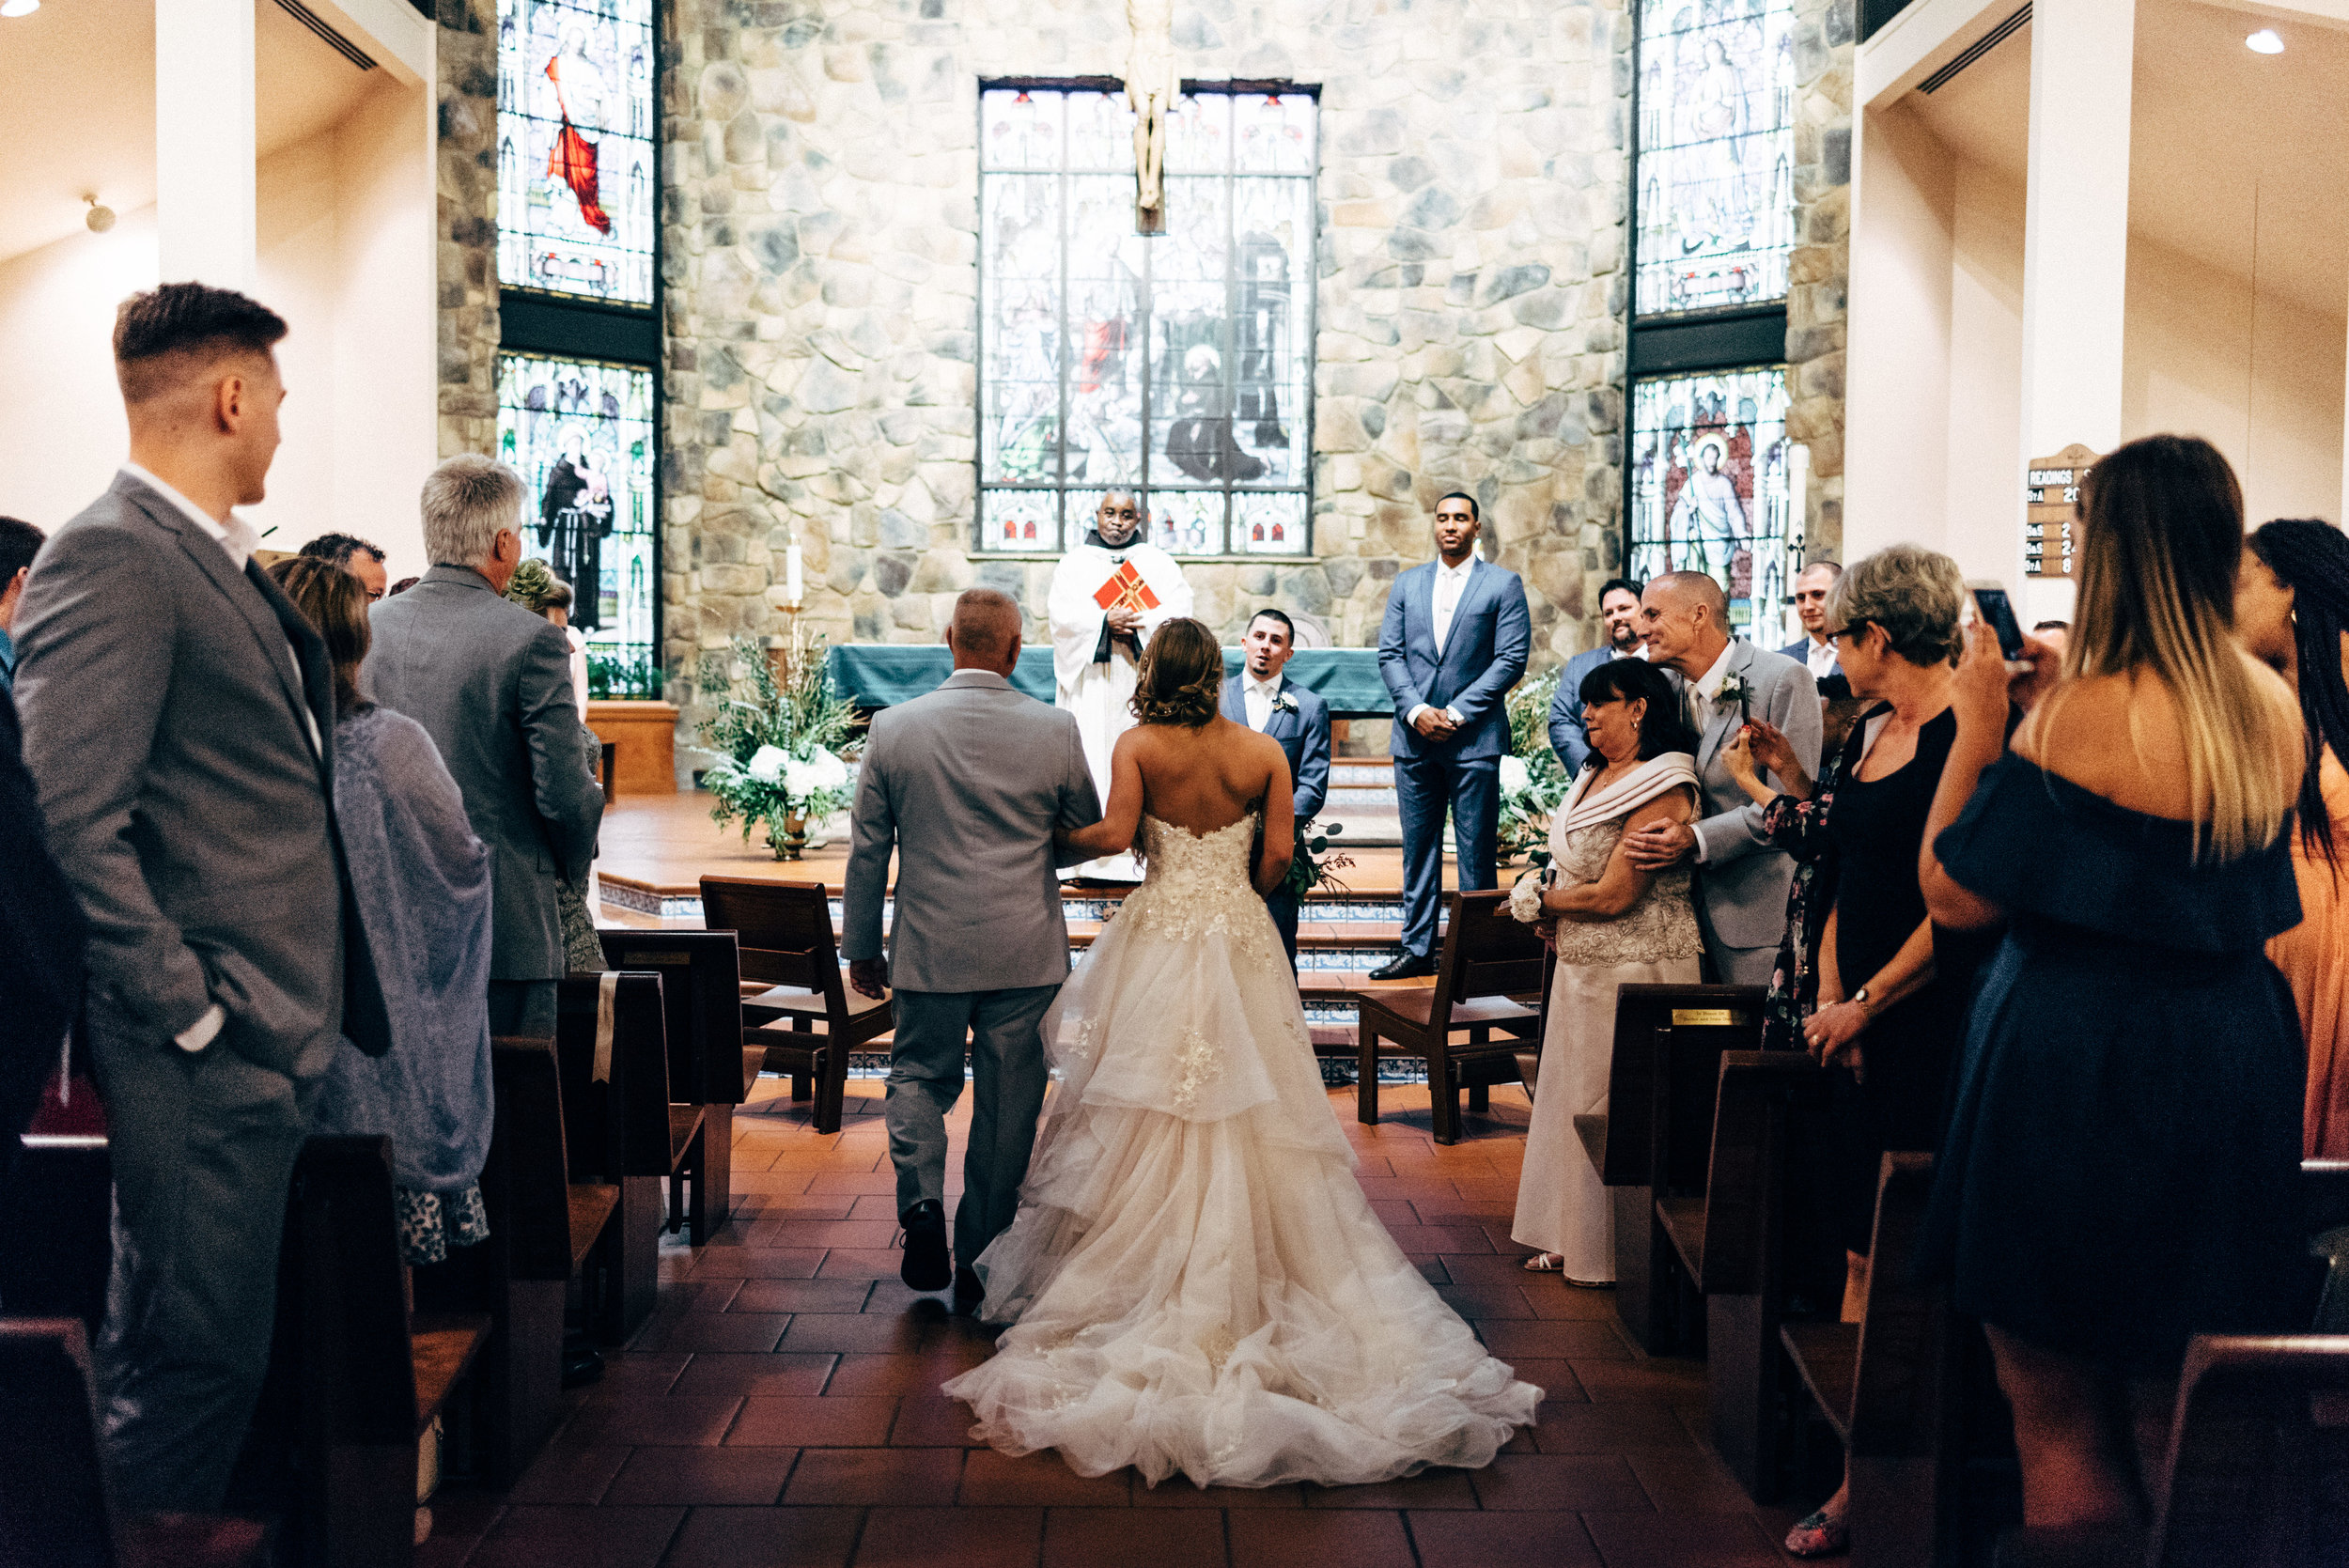 father giving away the bride at wedding inside St. Francis of Assisi Catholic Church